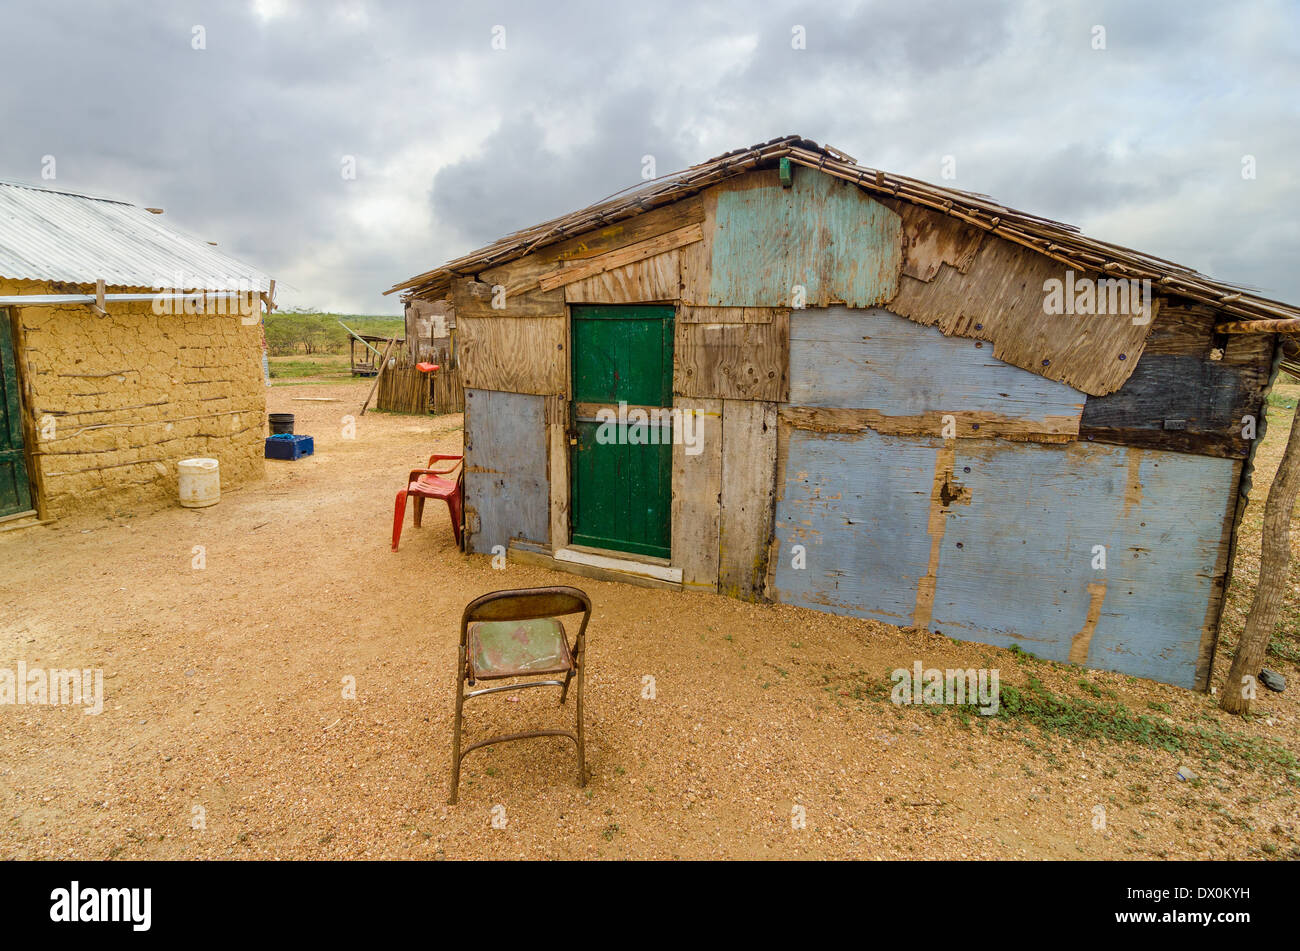 Wooden shack in a rural part of La Guajira, Colombia - Stock Image